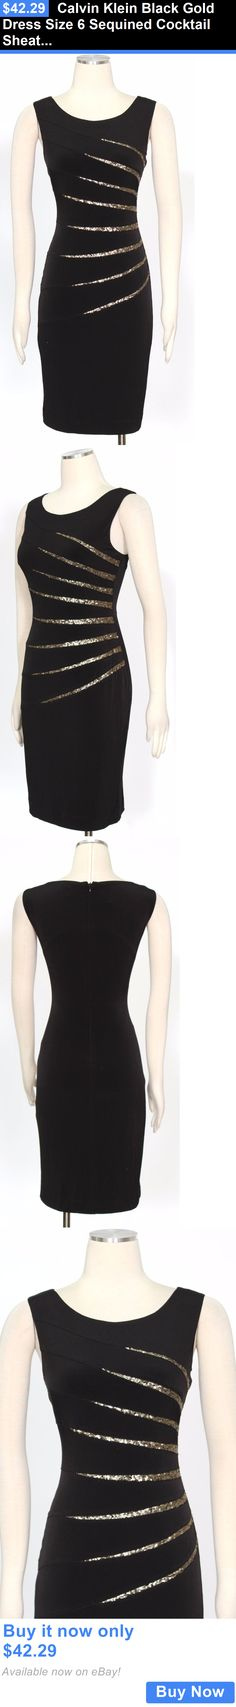 clothing and accessories: Calvin Klein Black Gold Dress Size 6 Sequined Cocktail Sheath Womens New* BUY IT NOW ONLY: $42.29